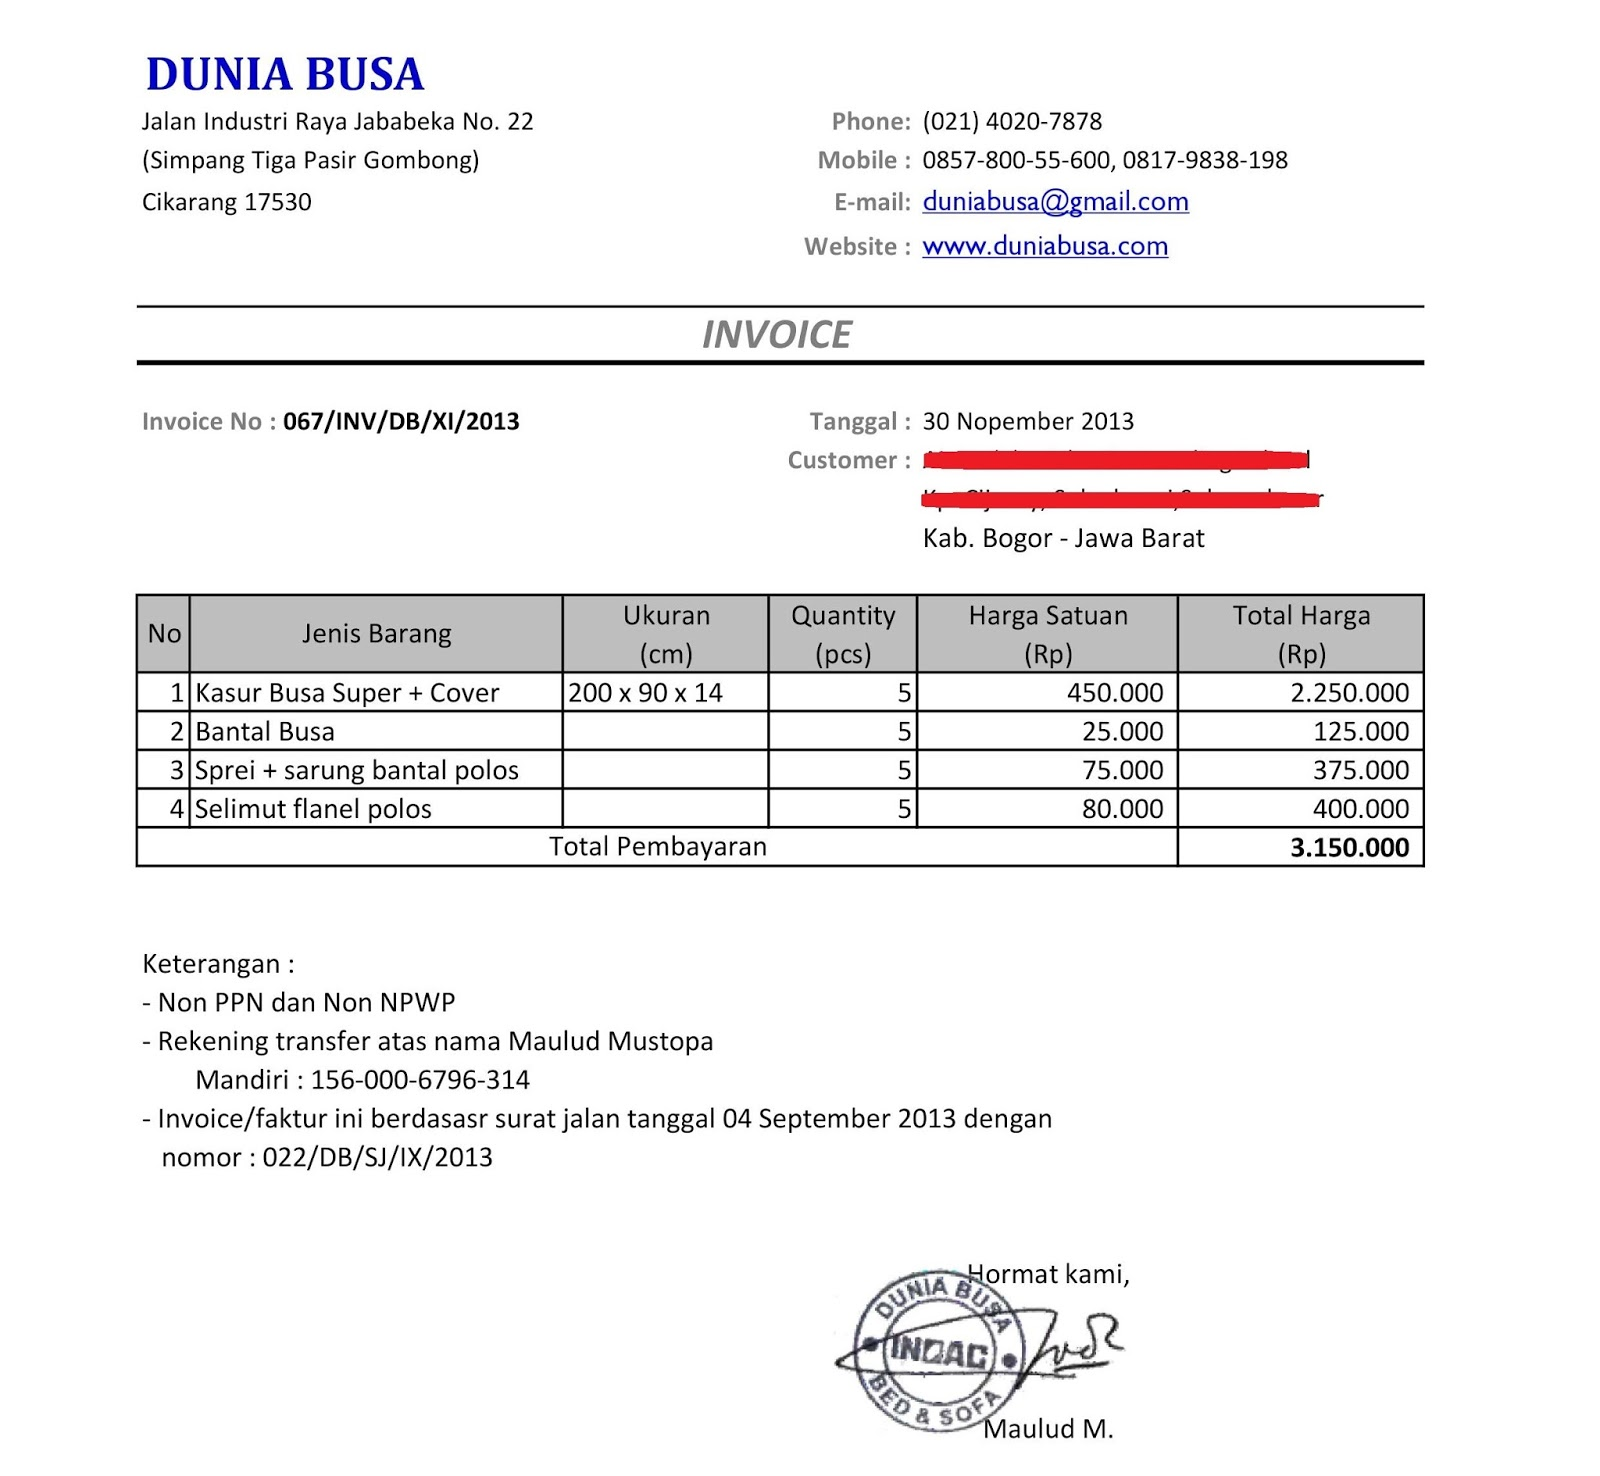 Centralasianshepherdus  Terrific Free Invoice Online  Create Invoice Online  Invoice Template  With Remarkable Contoh Format Invoice Atau Surat Tagihan  Brankas Arsip  Free Invoice Online With Delectable Sending Invoice Email Also Wpinvoice In Addition Artist Invoice And How To Make An Invoice In Excel As Well As Towing Invoices Additionally How Does Paypal Invoice Work From Sklepco With Centralasianshepherdus  Remarkable Free Invoice Online  Create Invoice Online  Invoice Template  With Delectable Contoh Format Invoice Atau Surat Tagihan  Brankas Arsip  Free Invoice Online And Terrific Sending Invoice Email Also Wpinvoice In Addition Artist Invoice From Sklepco